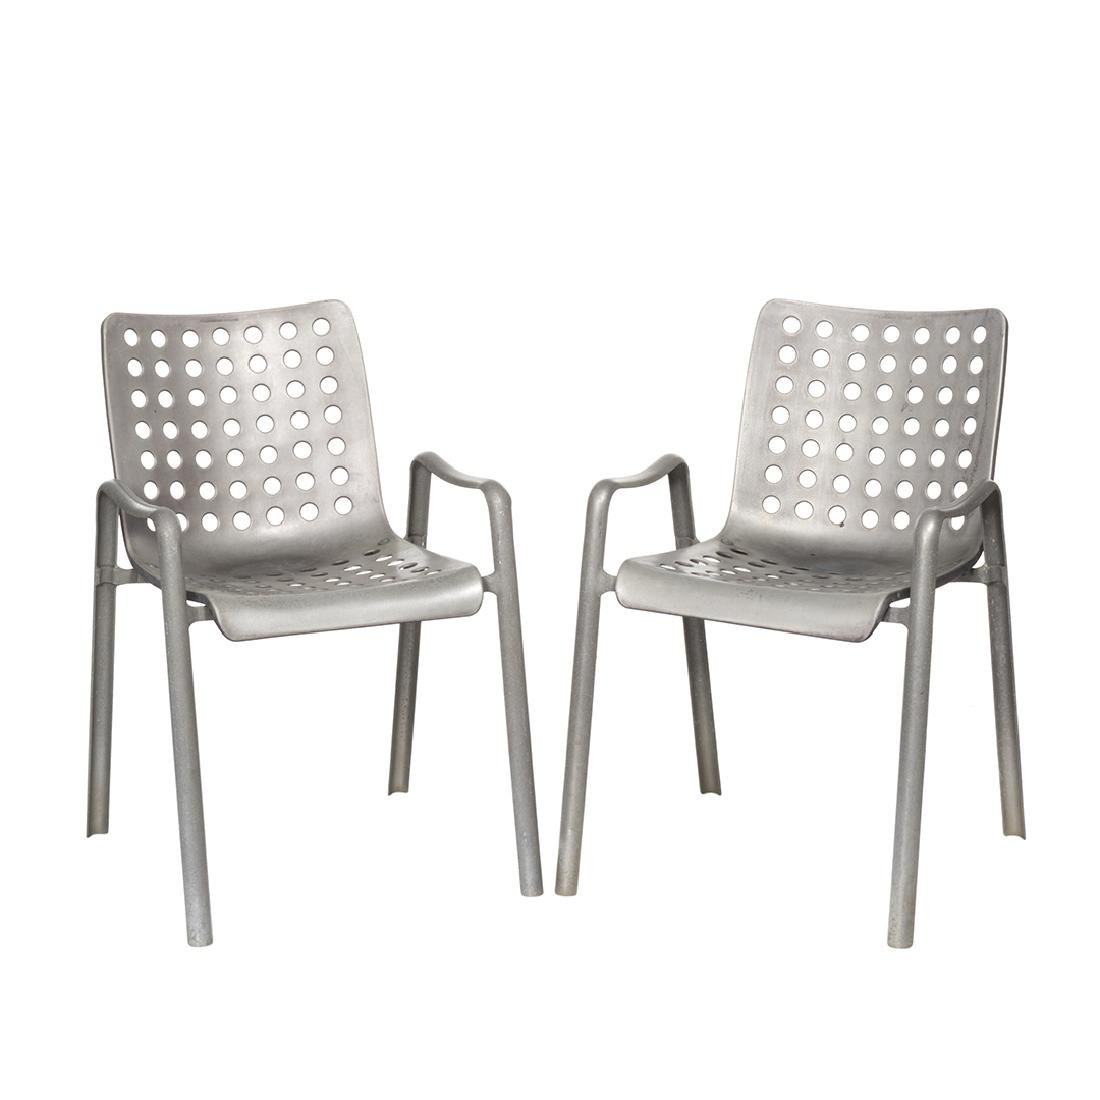 Hans Coray Landi Chairs (2)